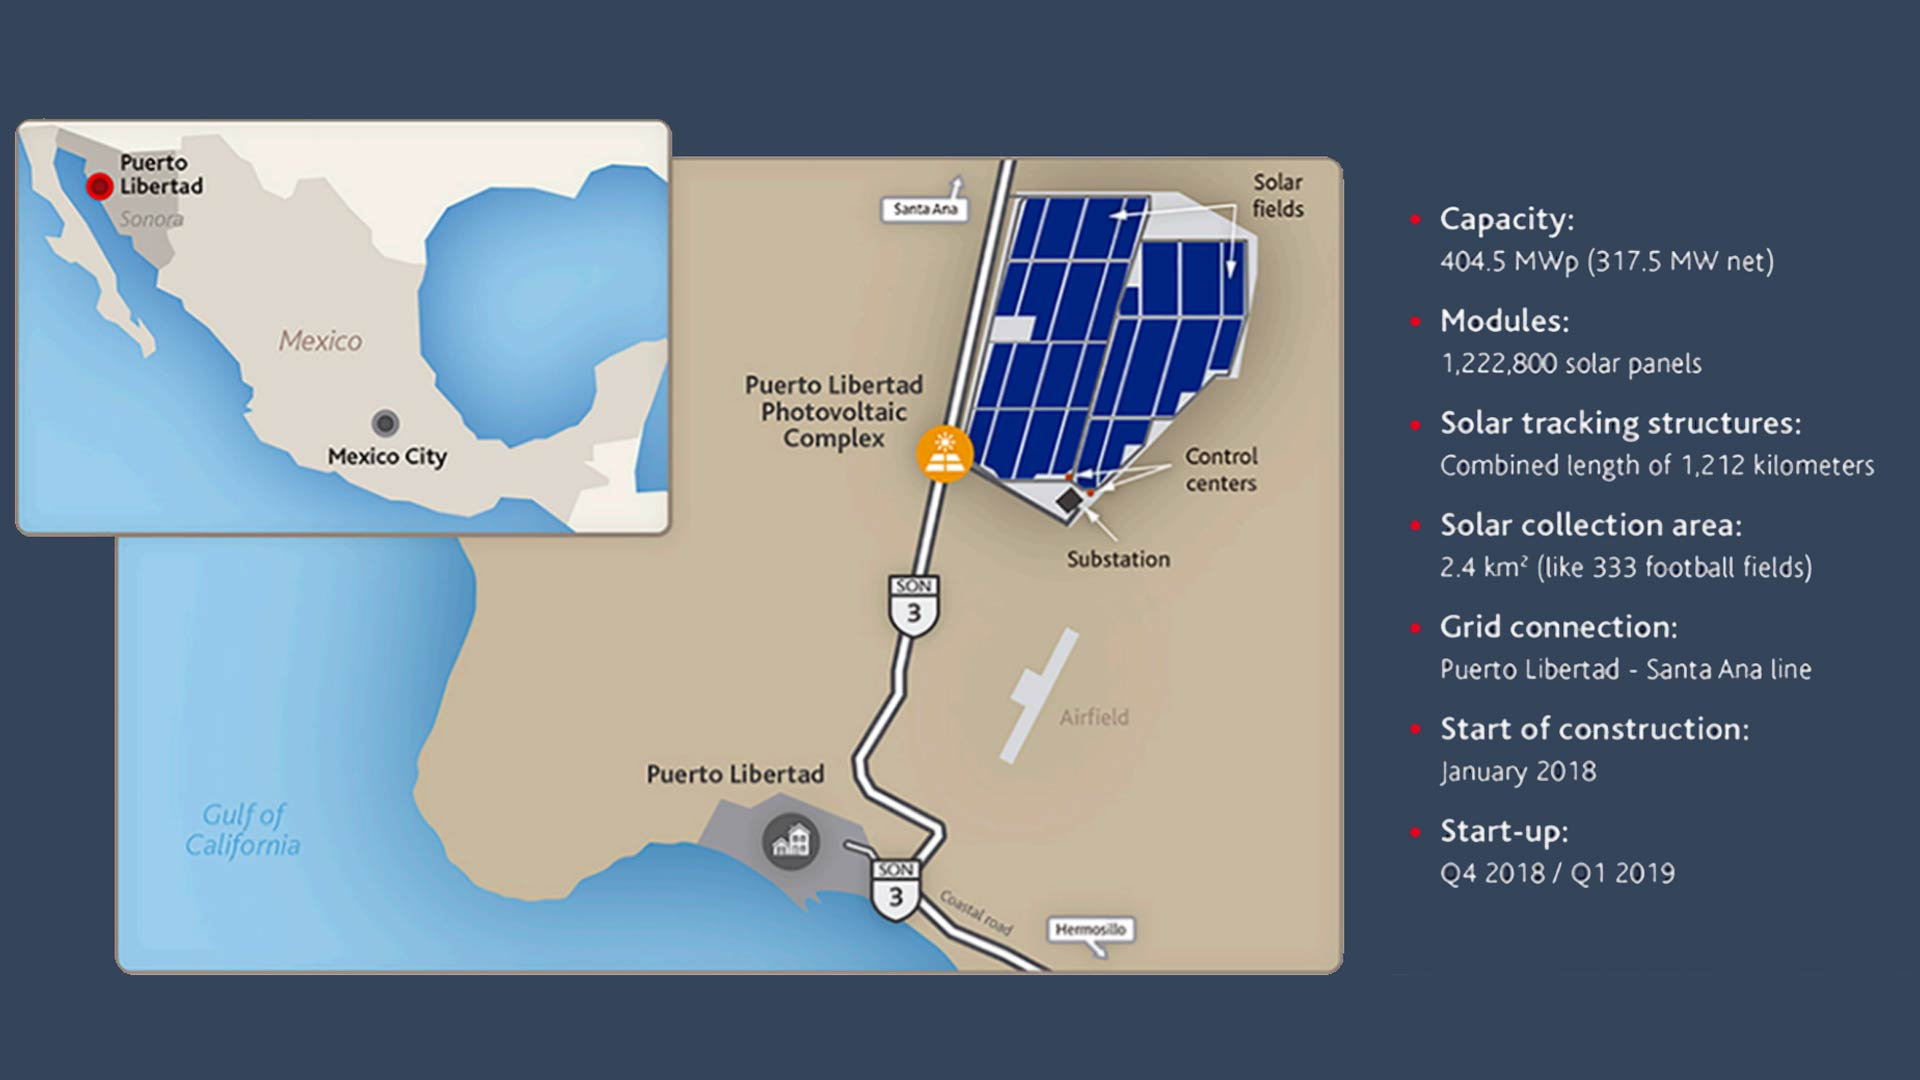 A massive solar array in Sonora, Mexico, will generate enough power for nearly 600,000 homes.